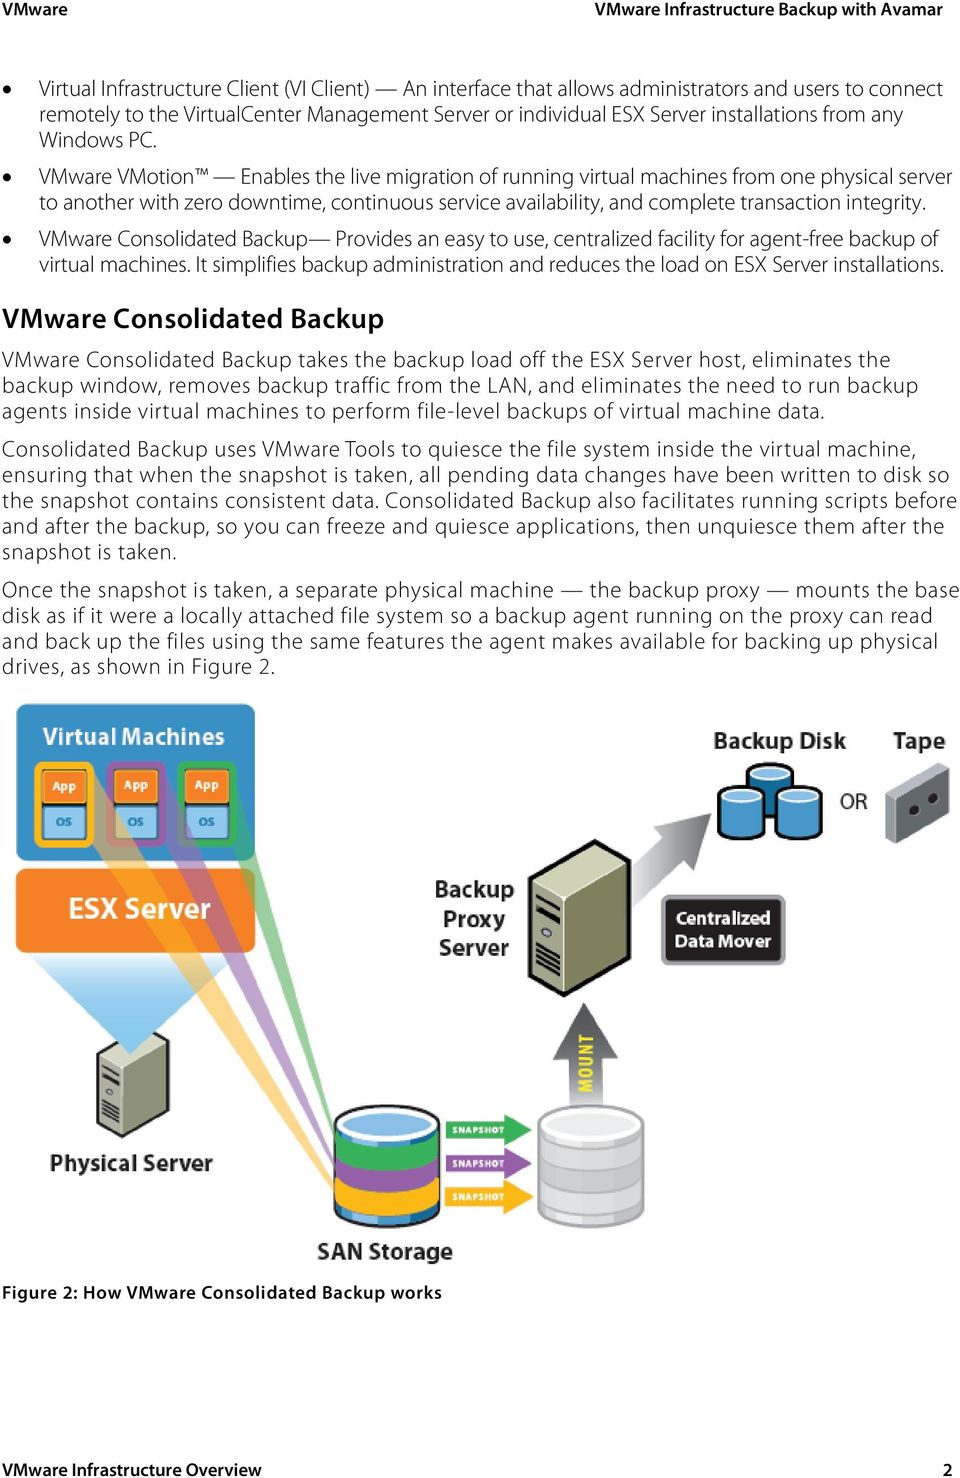 VMware VMotion Enables the live migration of running virtual machines from one physical server to another with zero downtime, continuous service availability, and complete transaction integrity.